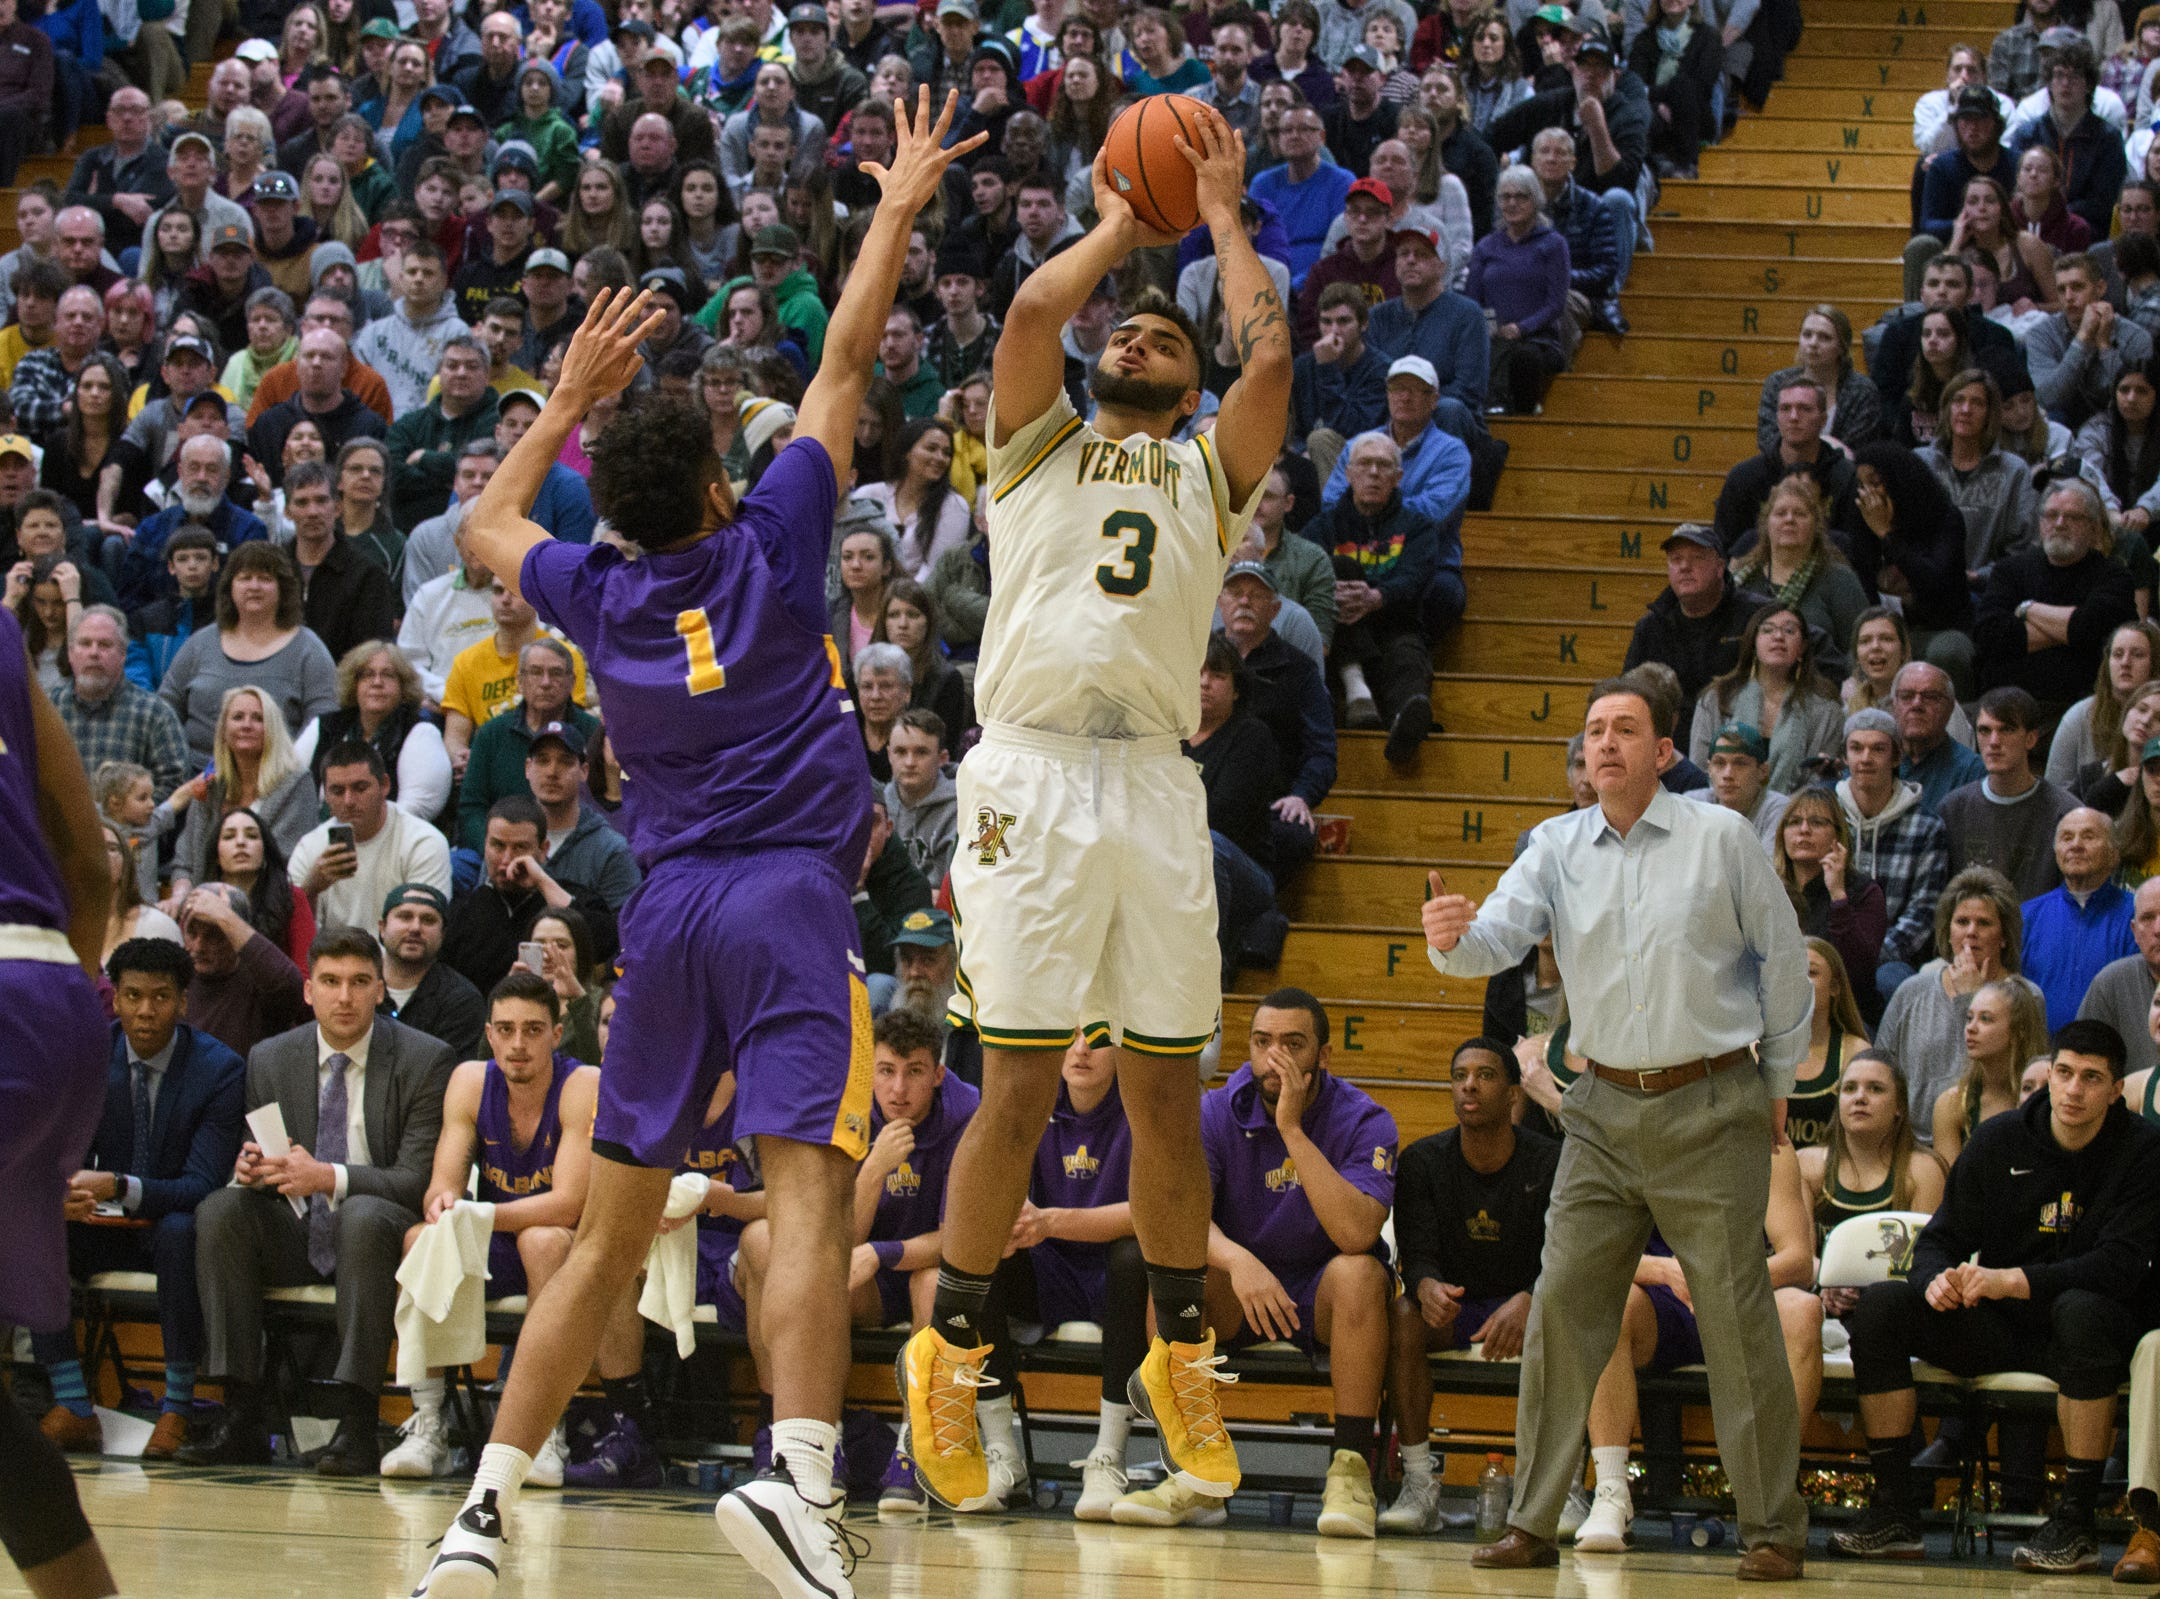 Vermont forward Anthony Lamb (3) shoots a three pointer over Albany's Malachi De Sousa (1) during the men's basketball game between the Albany Great Danes and the Vermont Catamounts at Patrick Gym on Saturday February 9, 2019 in Burlington, Vermont.